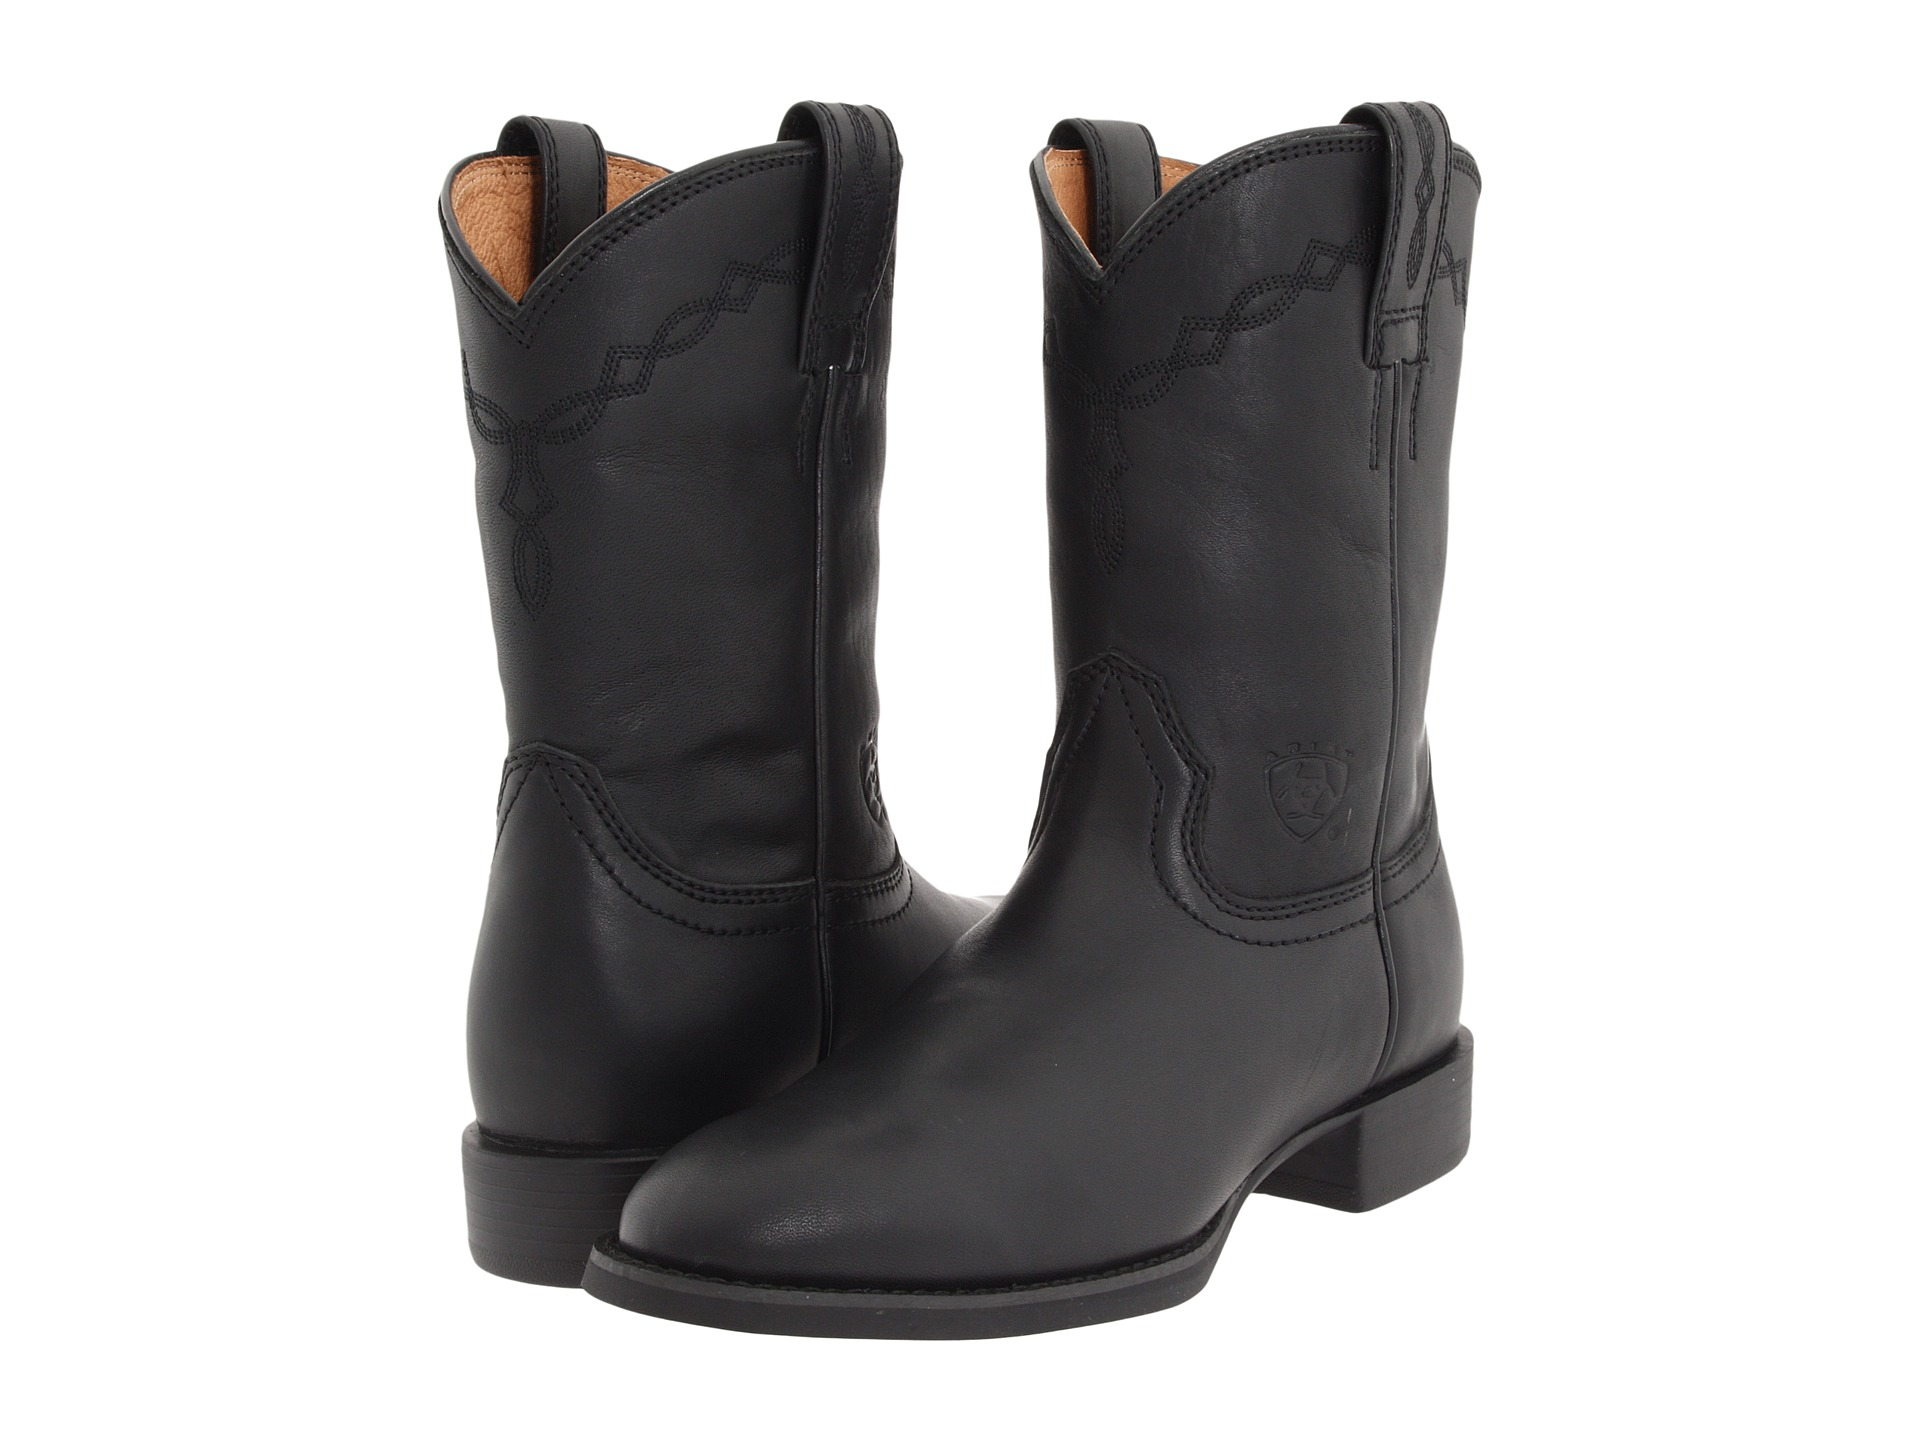 Ariat Heritage Roper - Zappos.com Free Shipping BOTH Ways